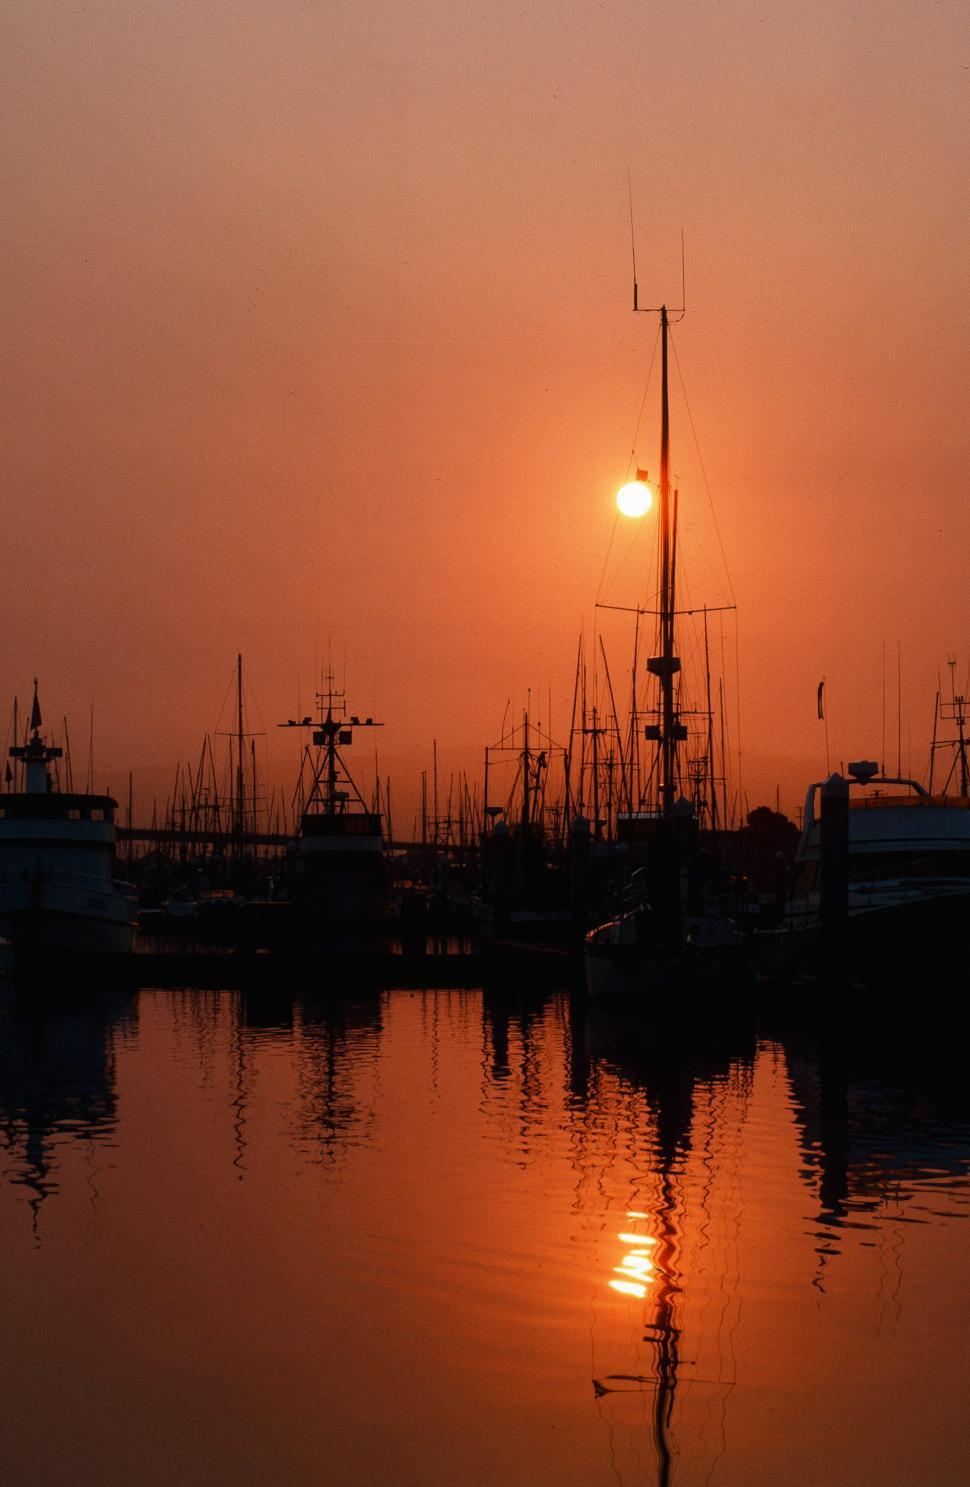 Download Free Stock HD Photo of Fishing boats in orange sunset Online